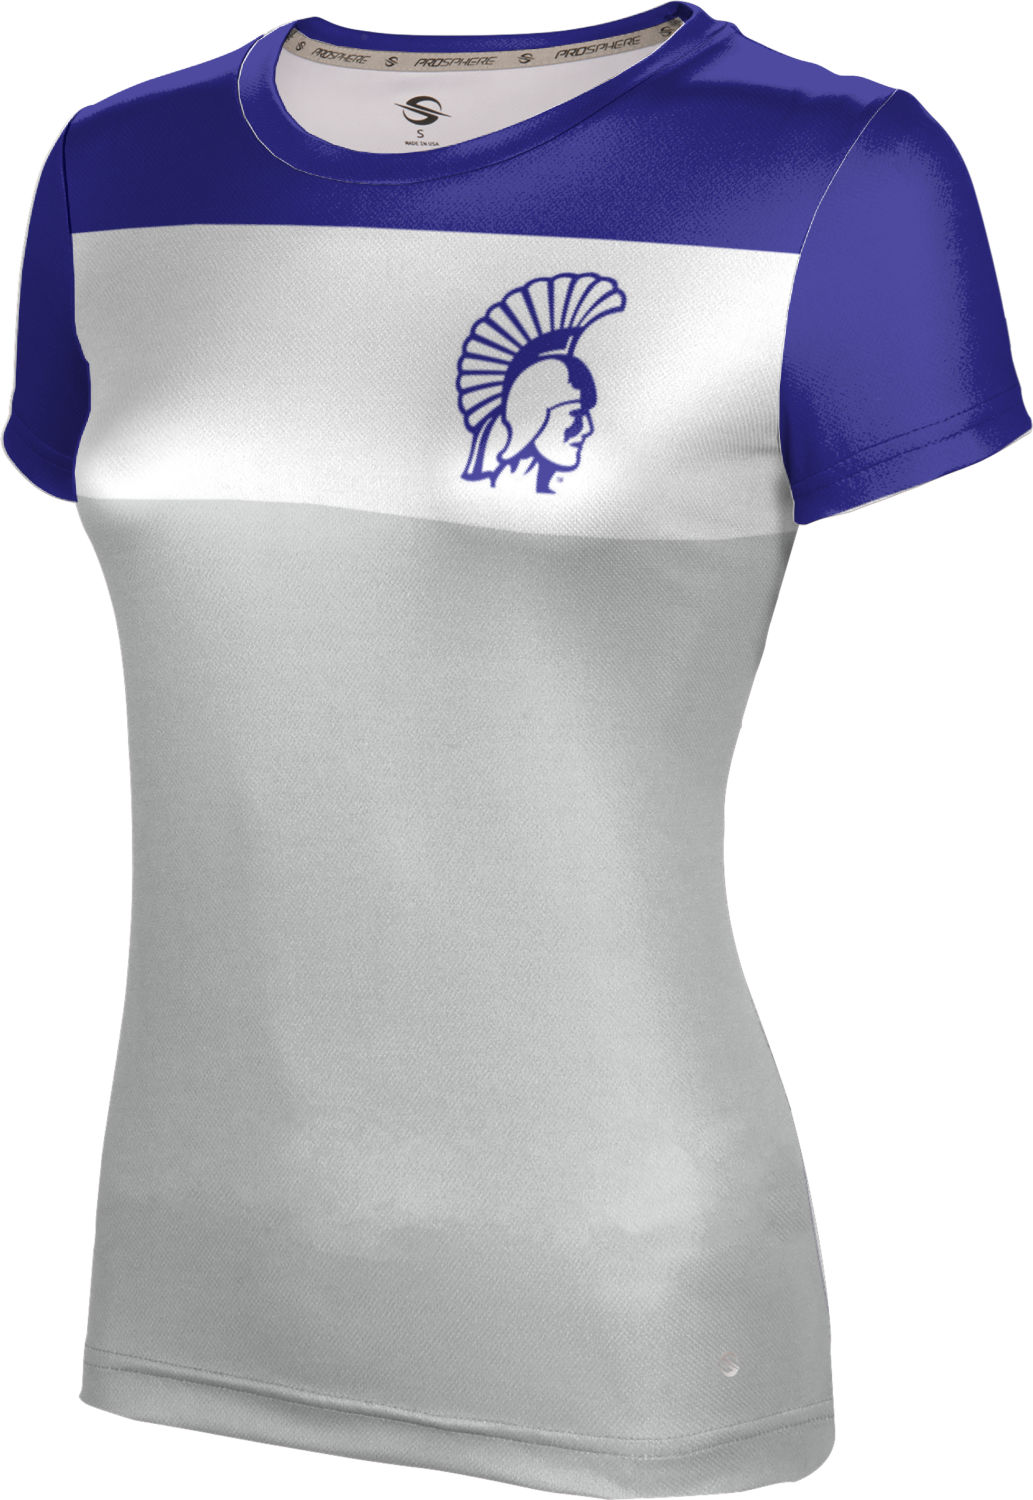 ProSphere Girls' Winona State University Prime Tech Tee